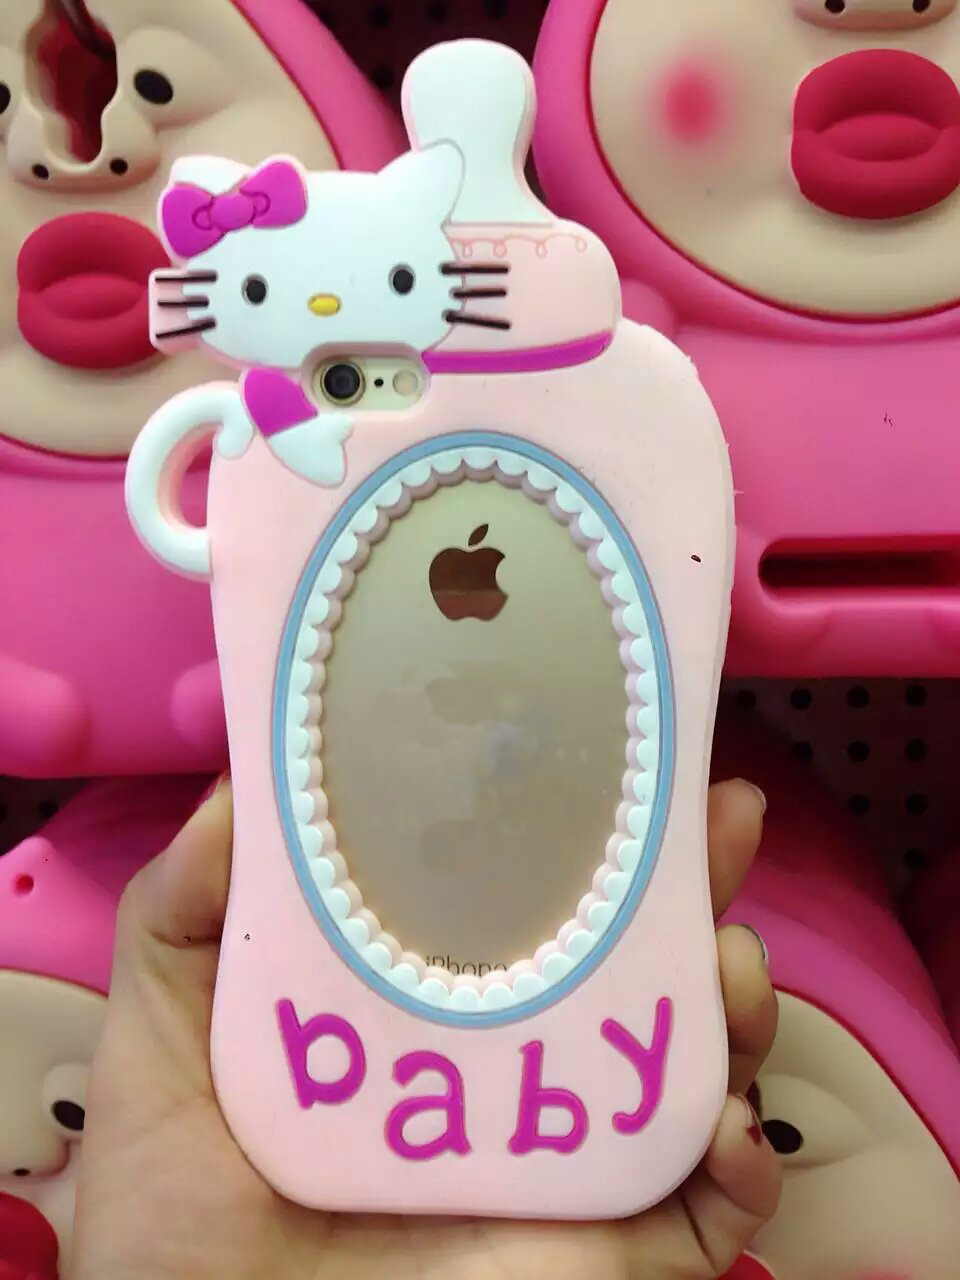 New Arrive BABY Kitty Cat pacifier For Apple iphone 6 6S 6plus 6splus mobile phone silicone protective case shell(China (Mainland))